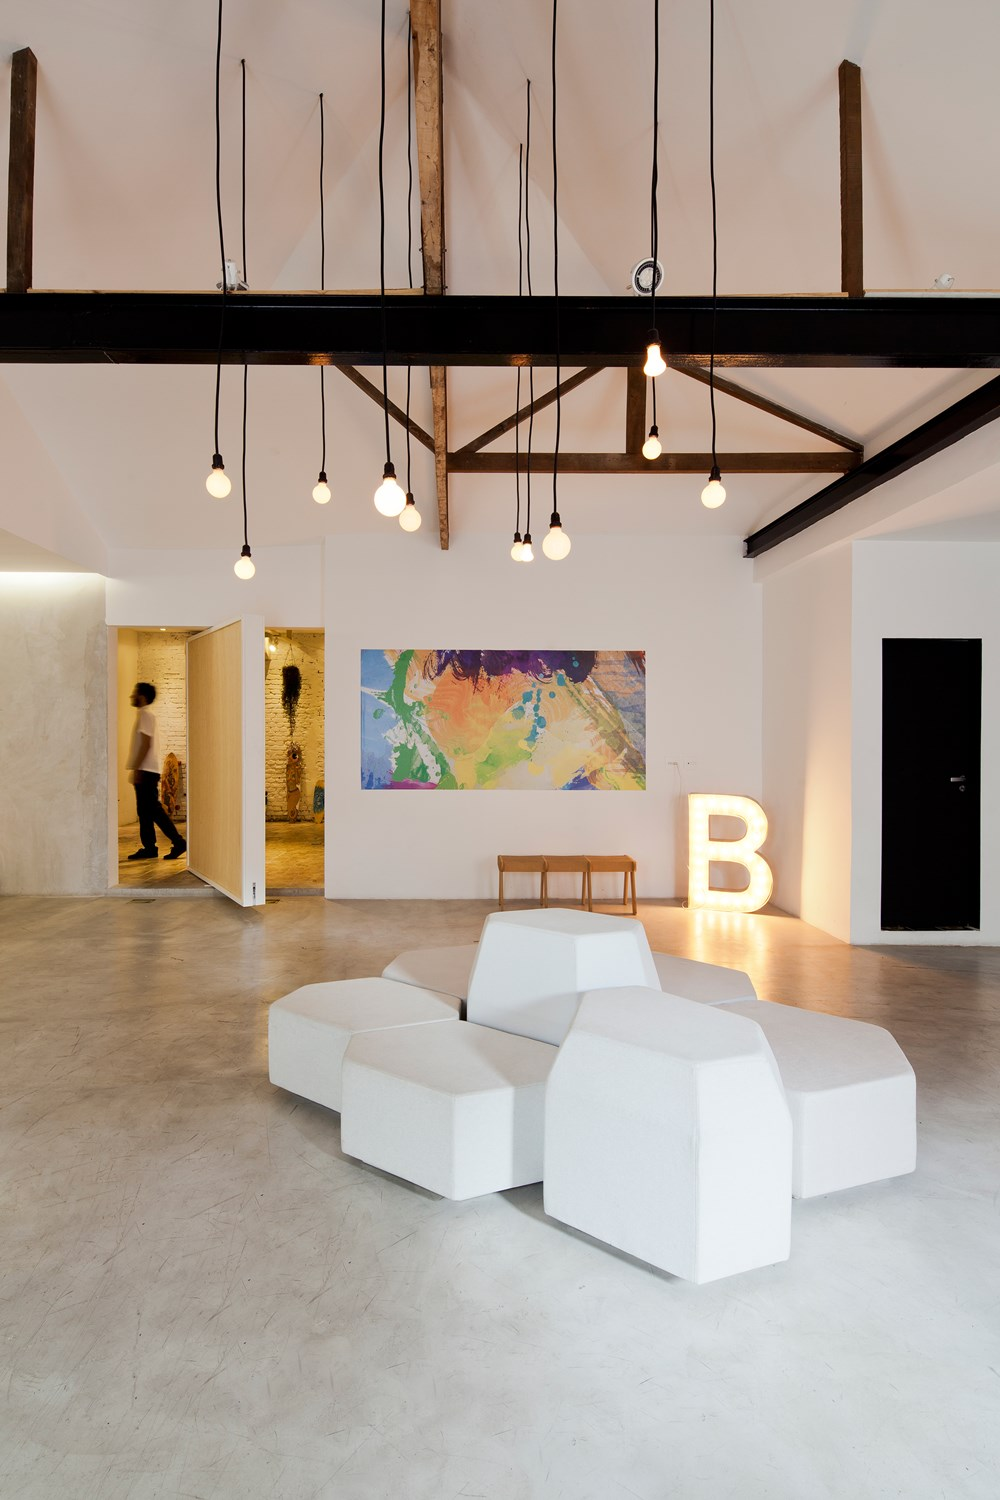 Bediff Exhibition Space by ESTUDIO BRA 05